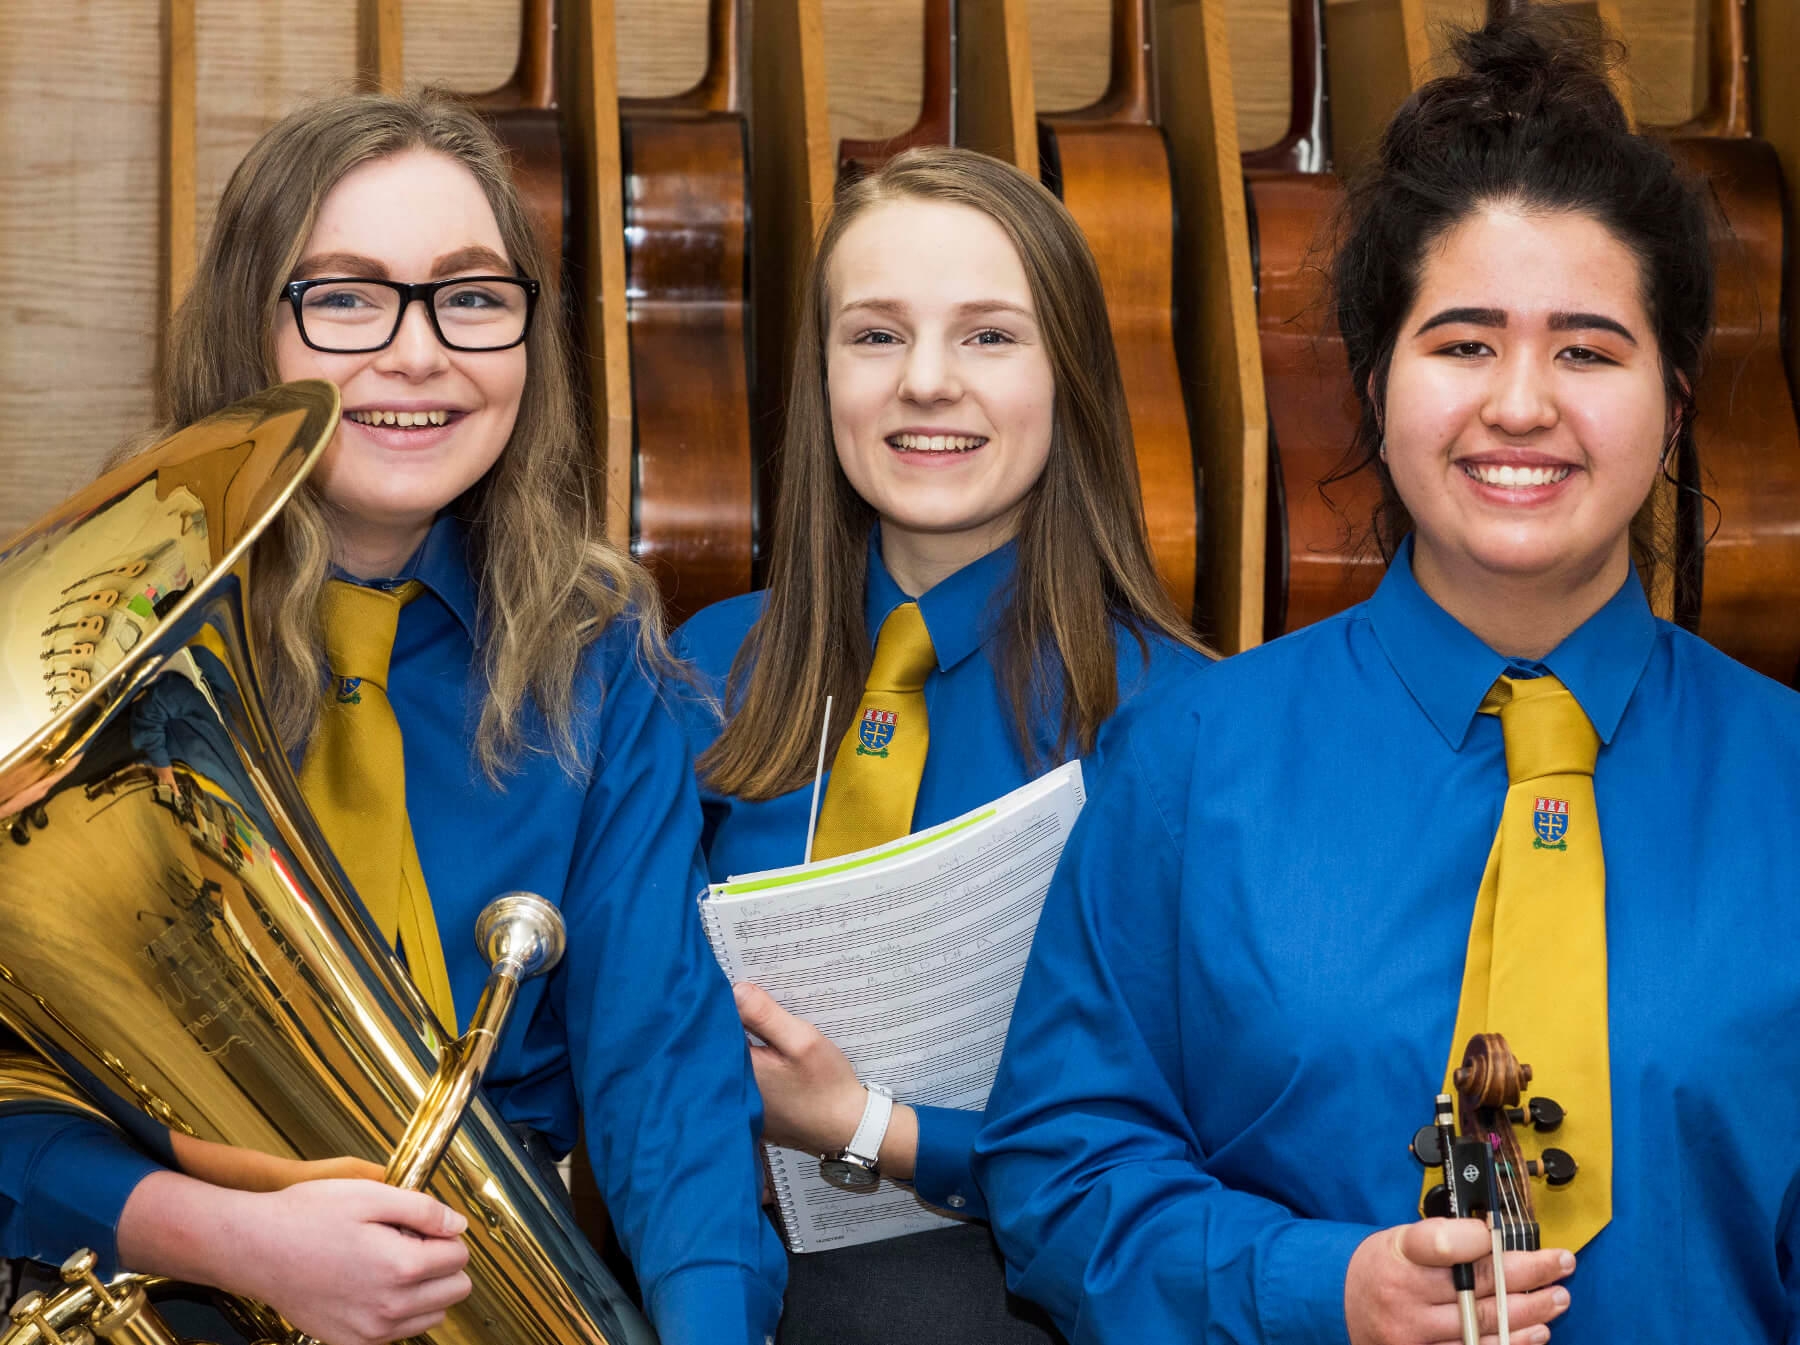 Aberdeen Musical Trio Hit a High Note with University Success